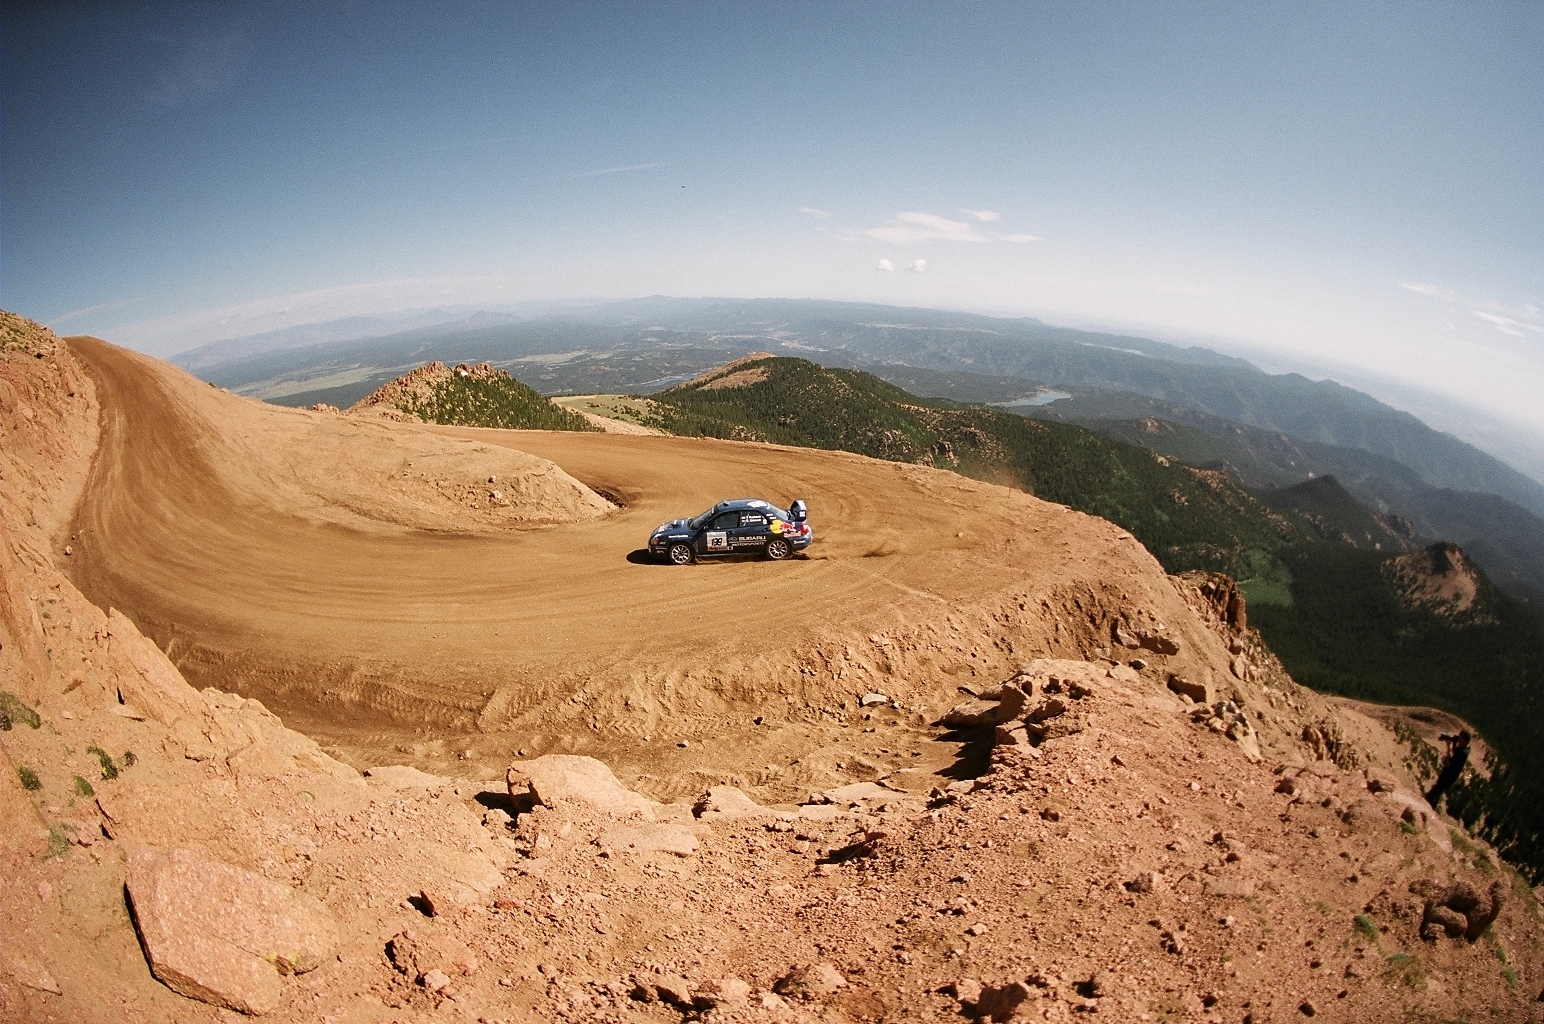 rally dirt subaru impreza HD Wallpaper